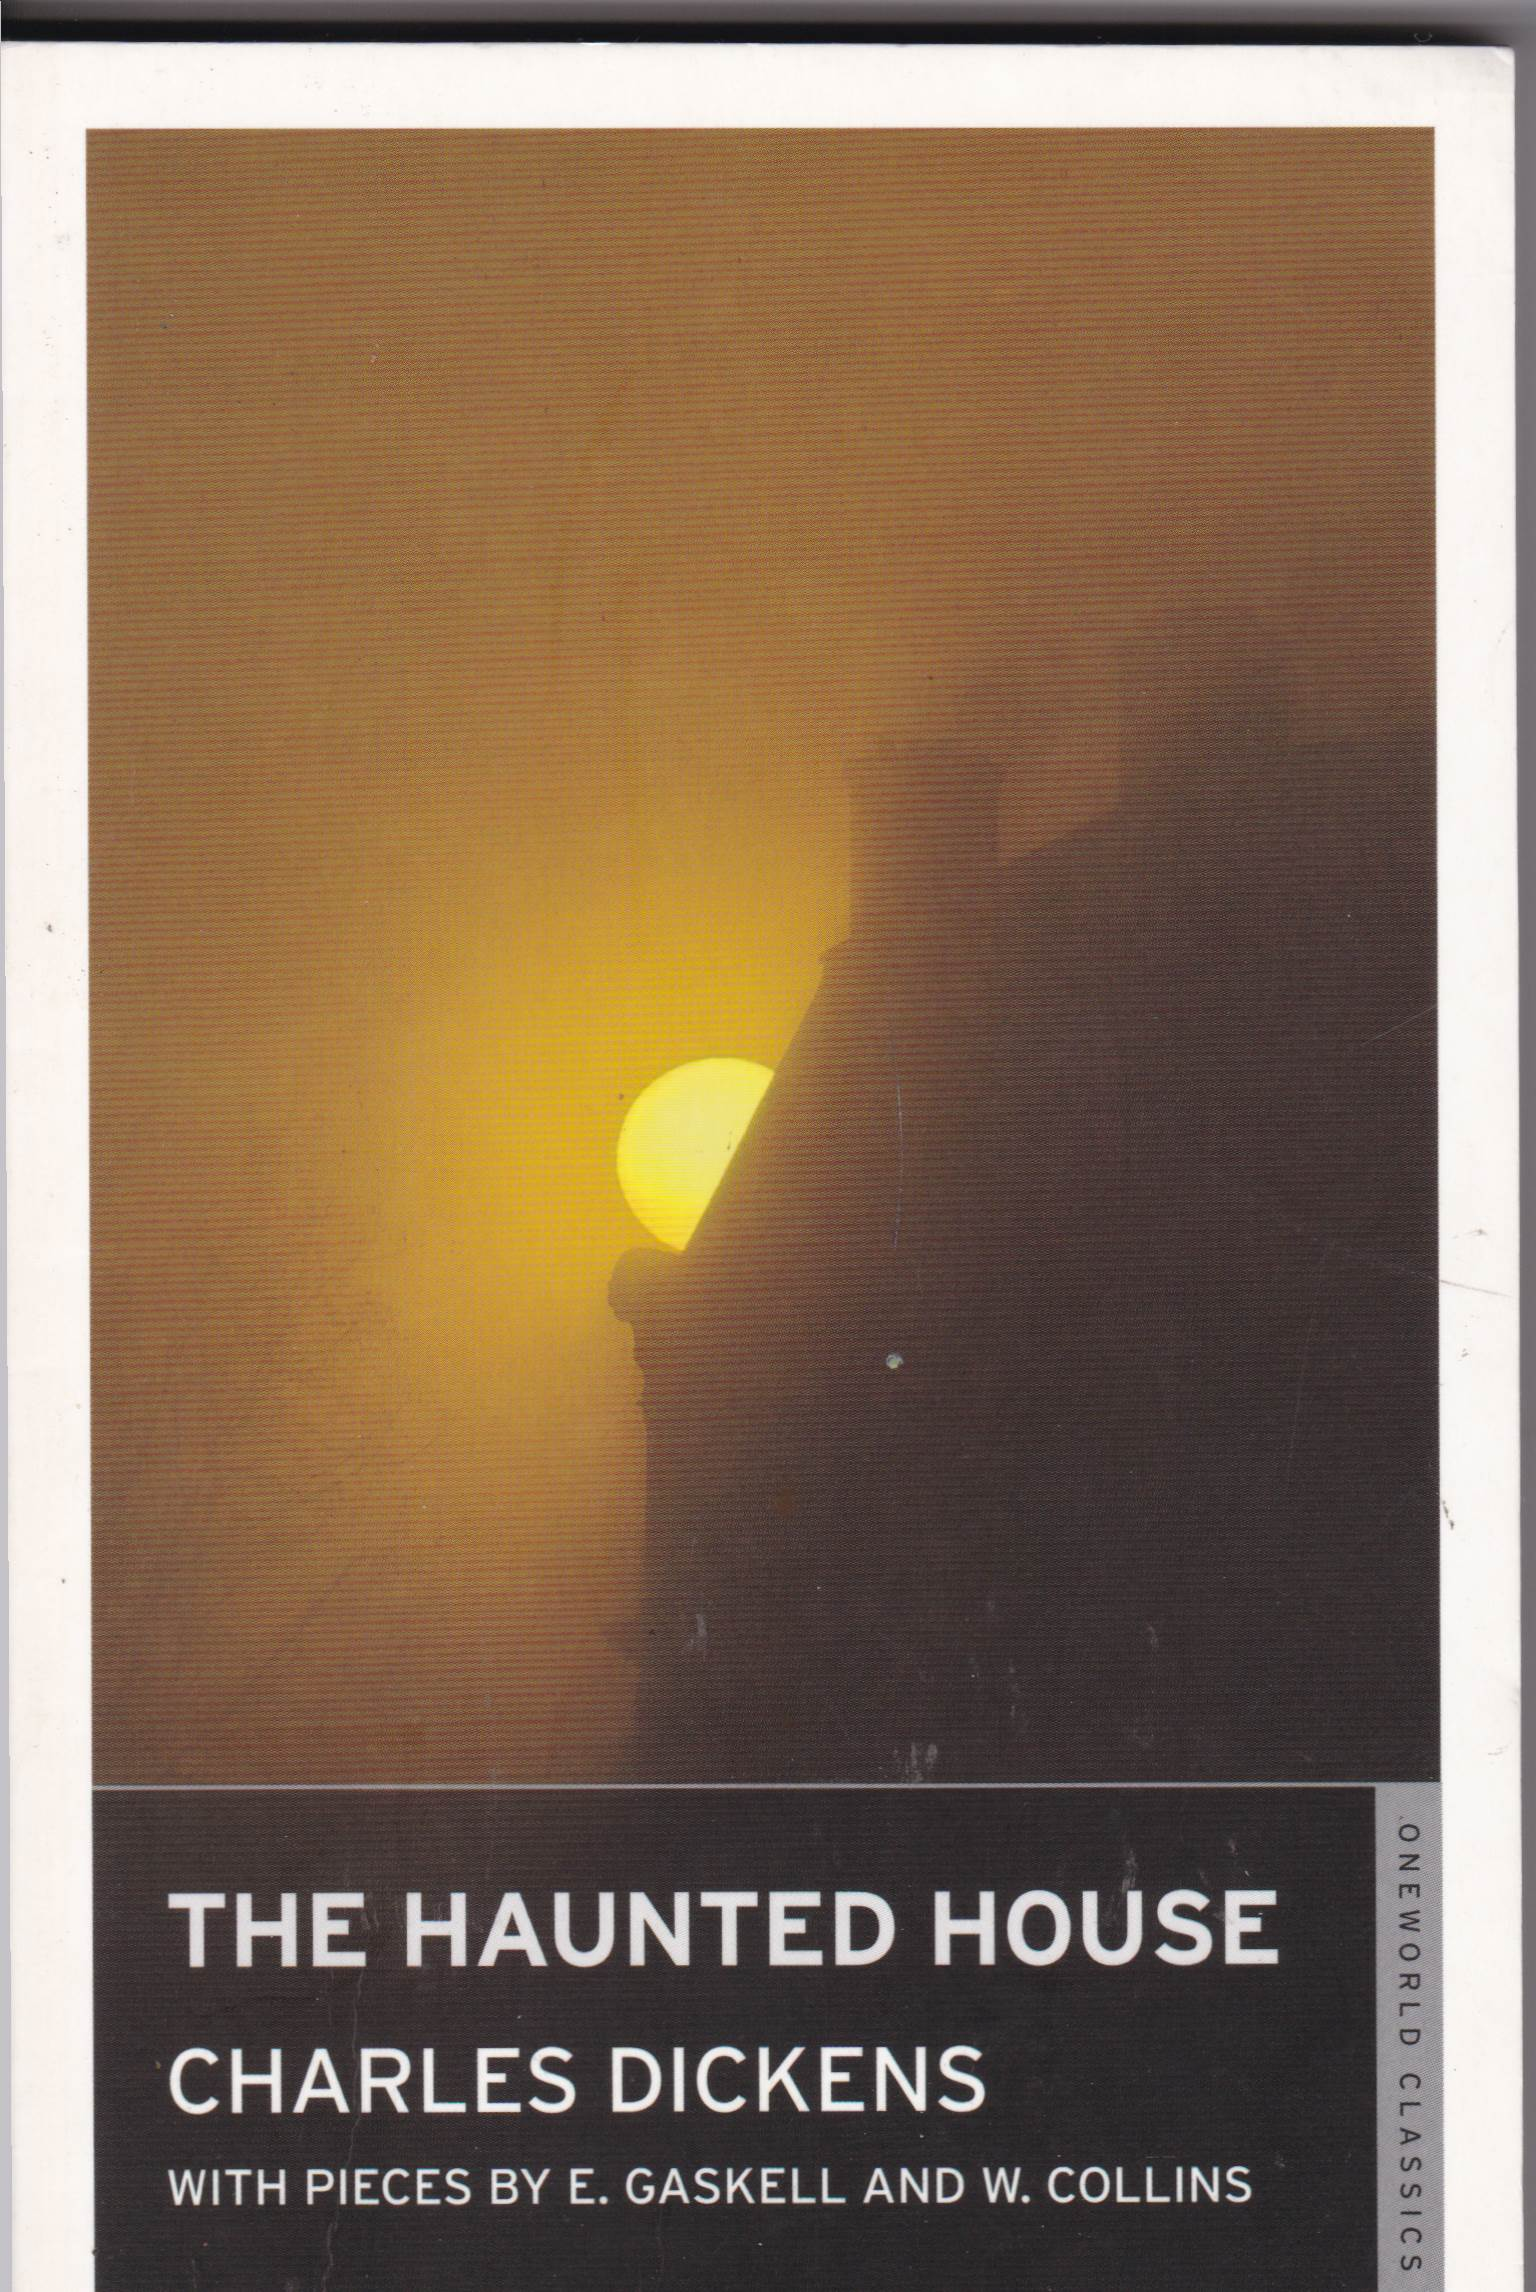 The Haunted House